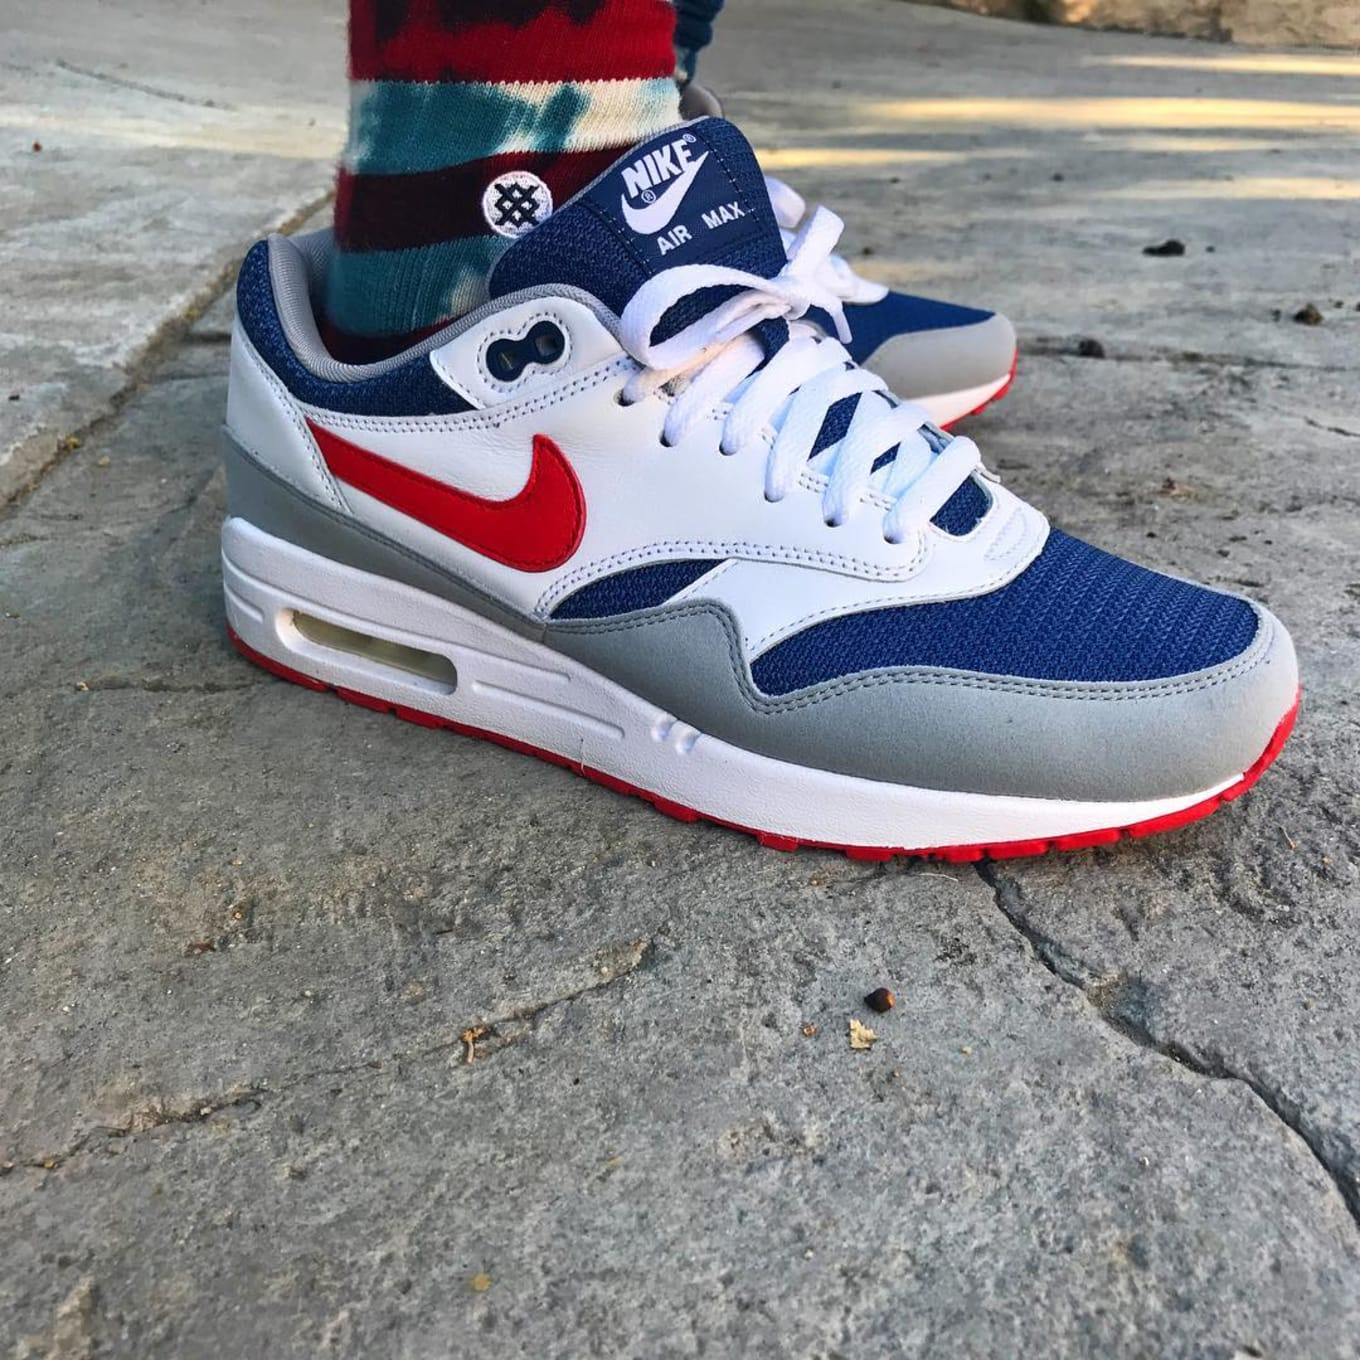 NIKEiD Nike By You USA Designs | Sole Collector